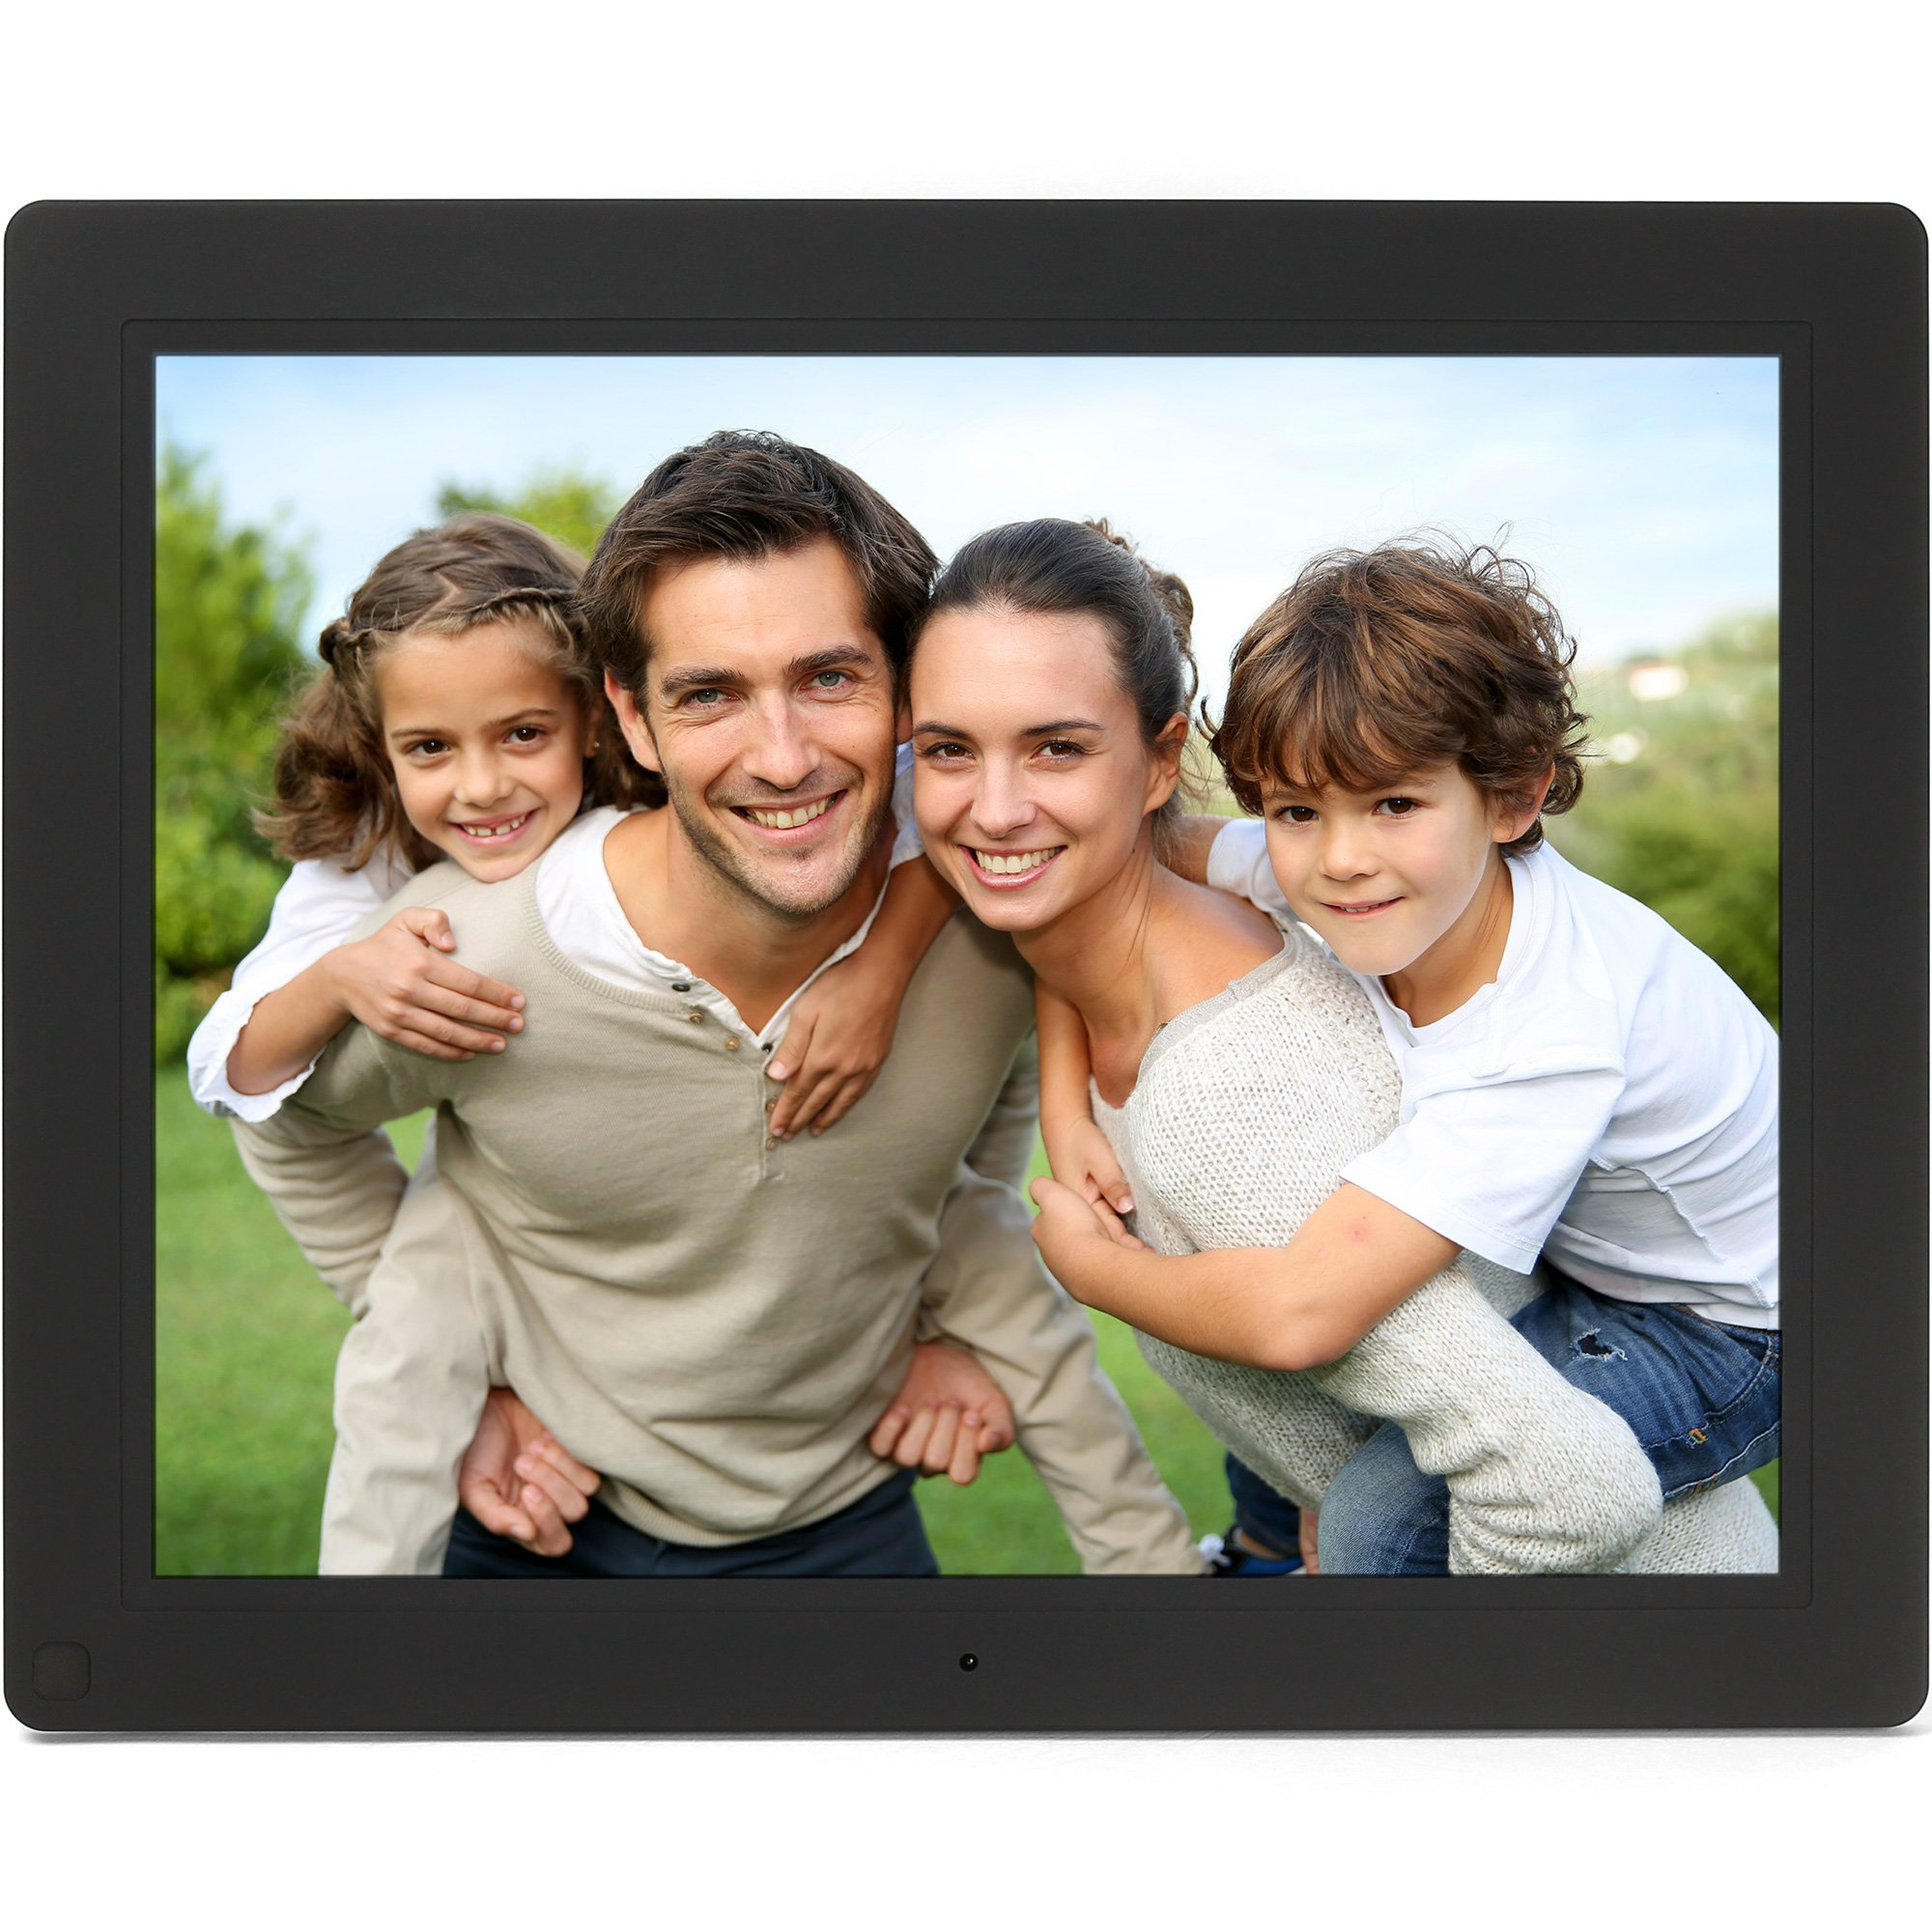 Micca Neo-Series 15-Inch Natural-View Digital Photo Frame with Motion Sensor and 8GB Storage Media (M153A-M) by Micca